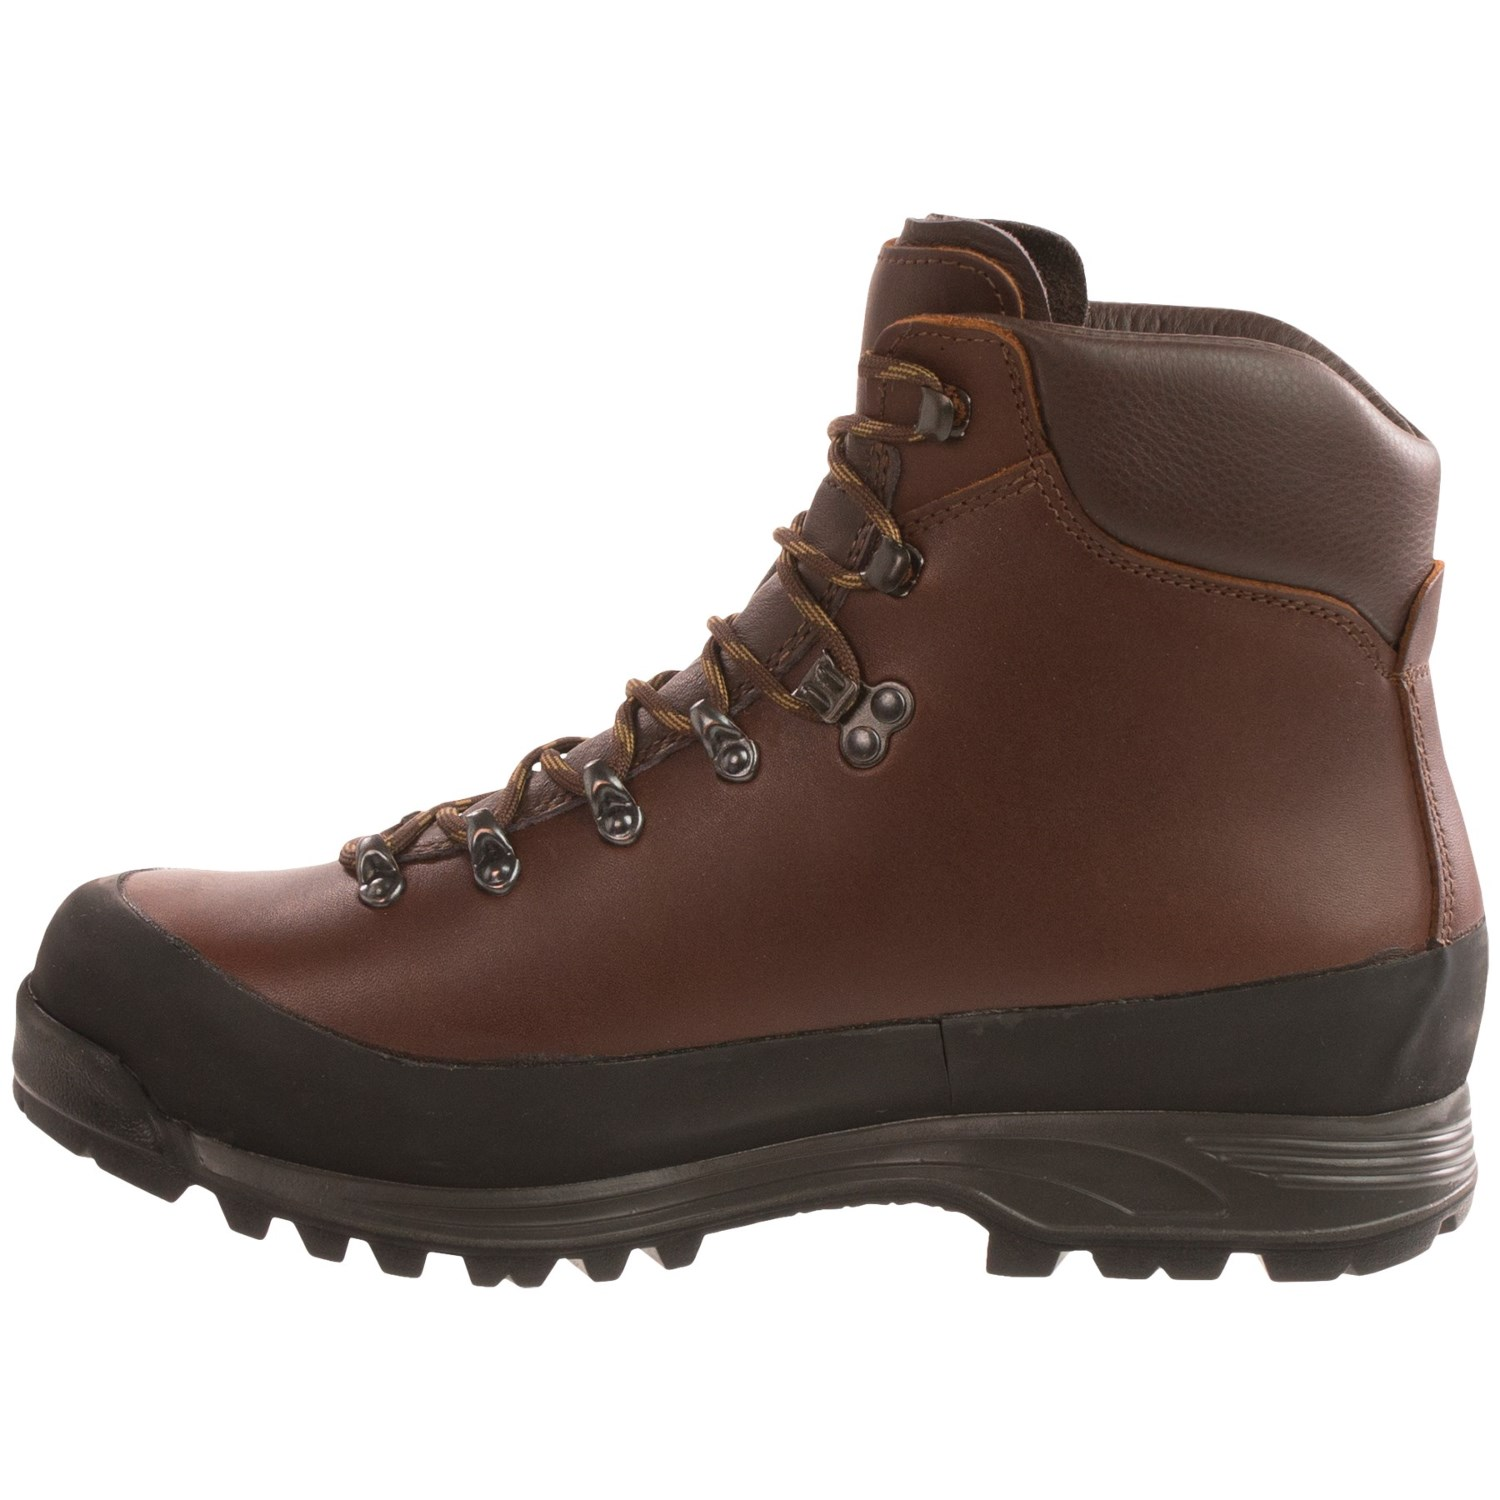 Alico Ultra Hiking Boots For Men Save 46